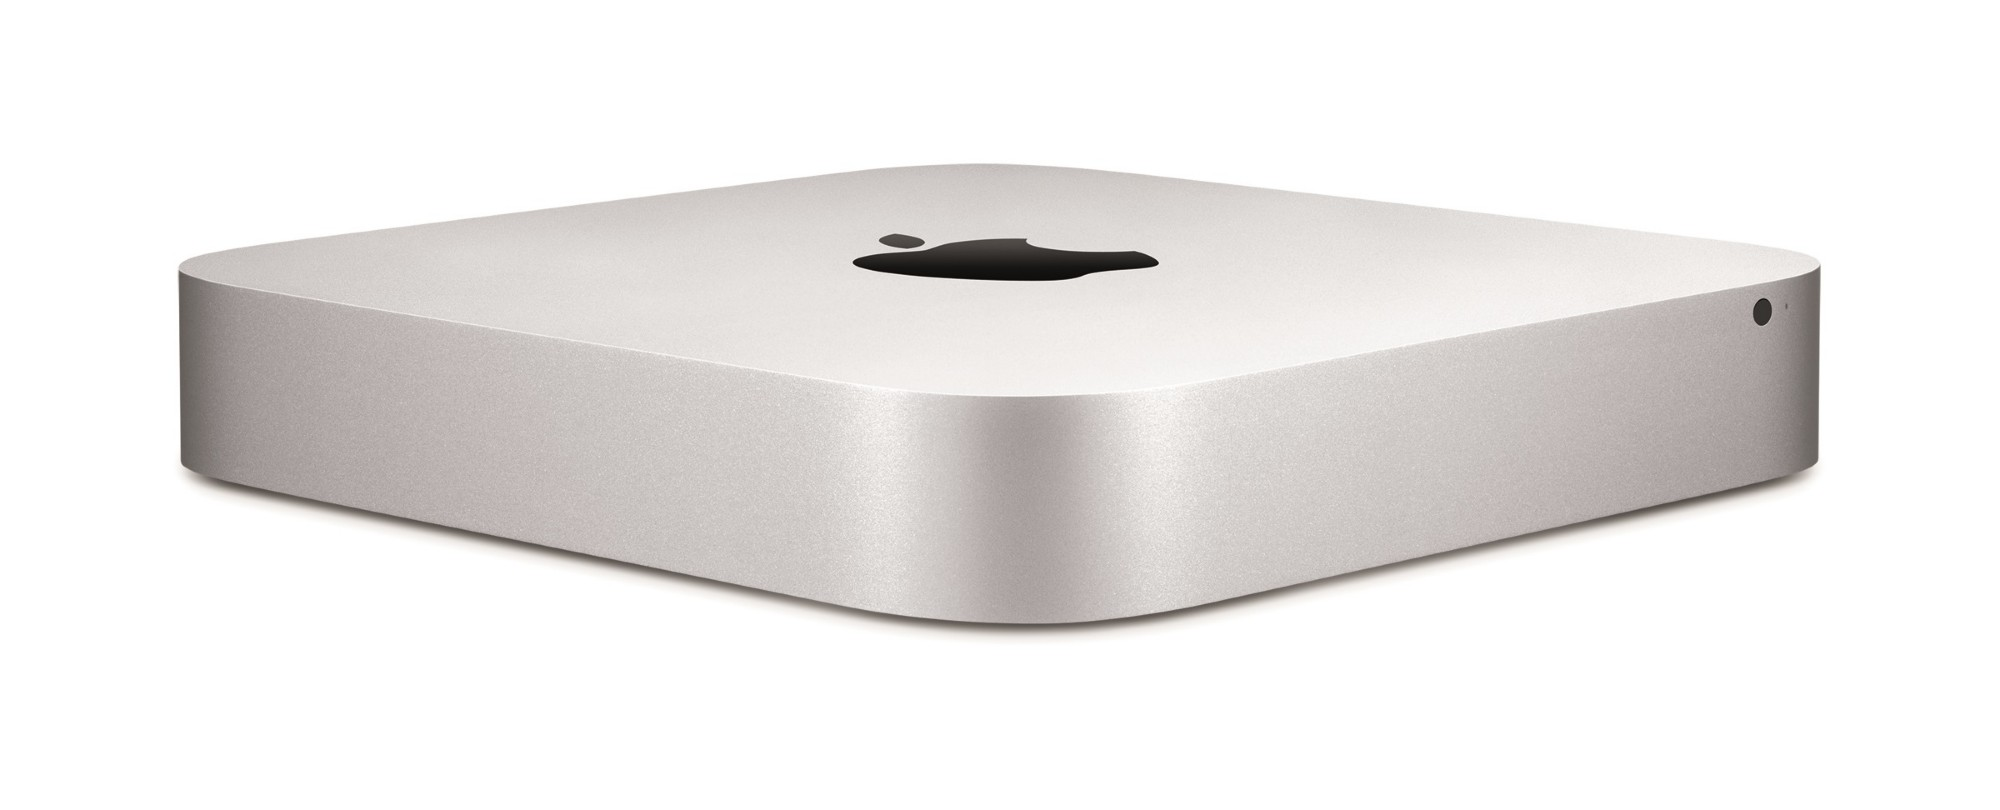 APPLE MGEM2D/A MAC MINI 1GHZ I5-4260U NETTOP SILVER PC